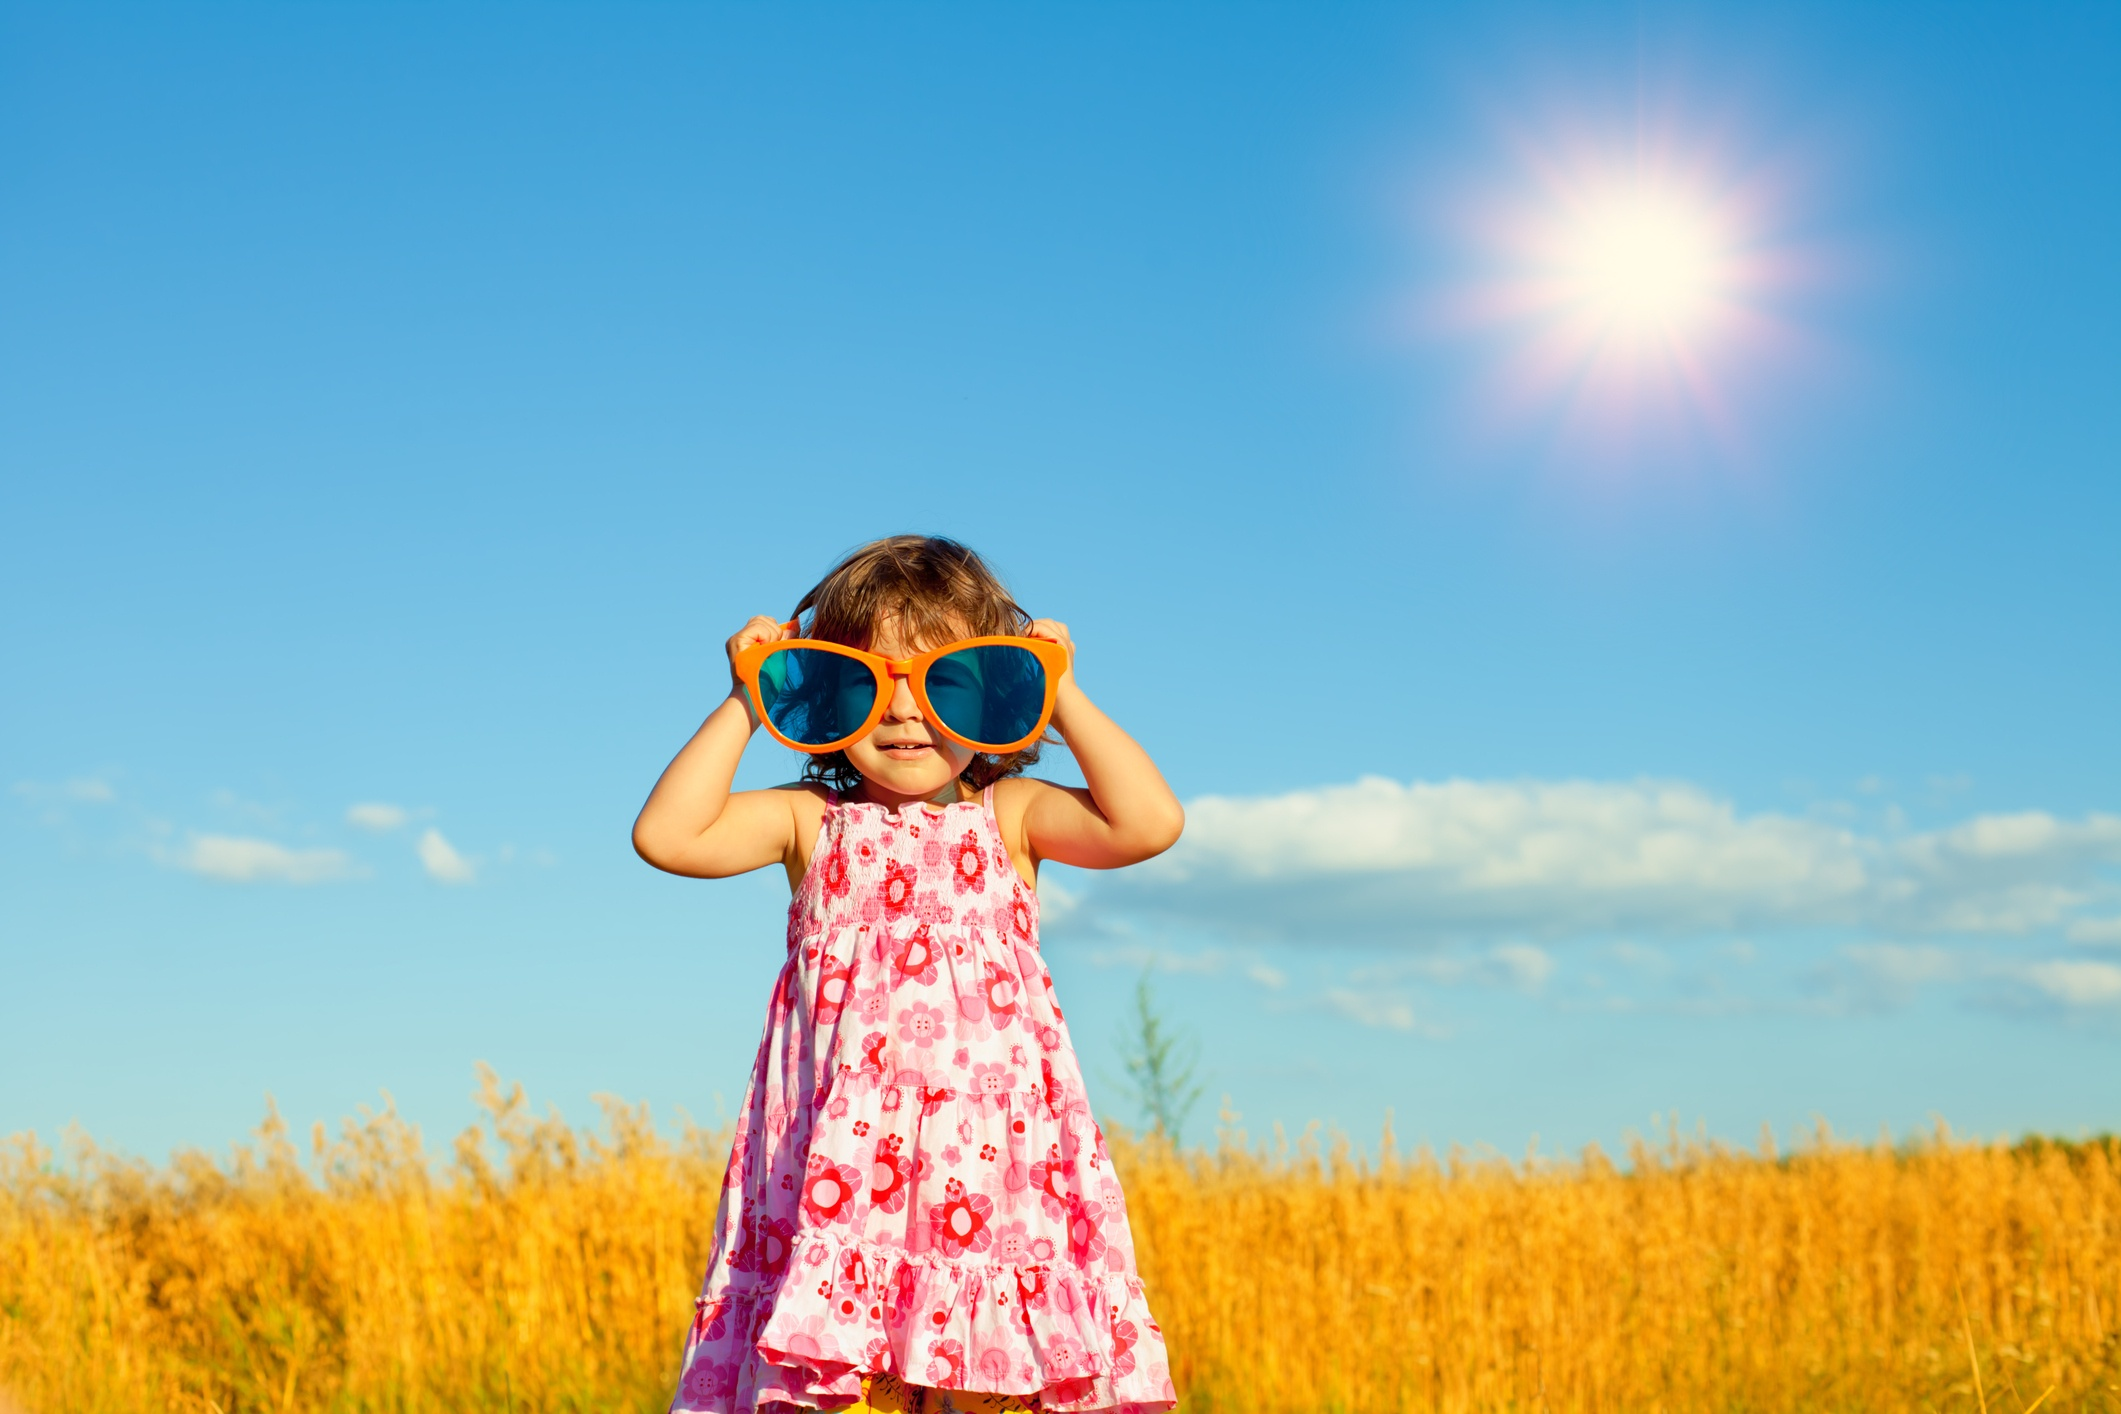 Protect Your Preschooler From Too Much Sun